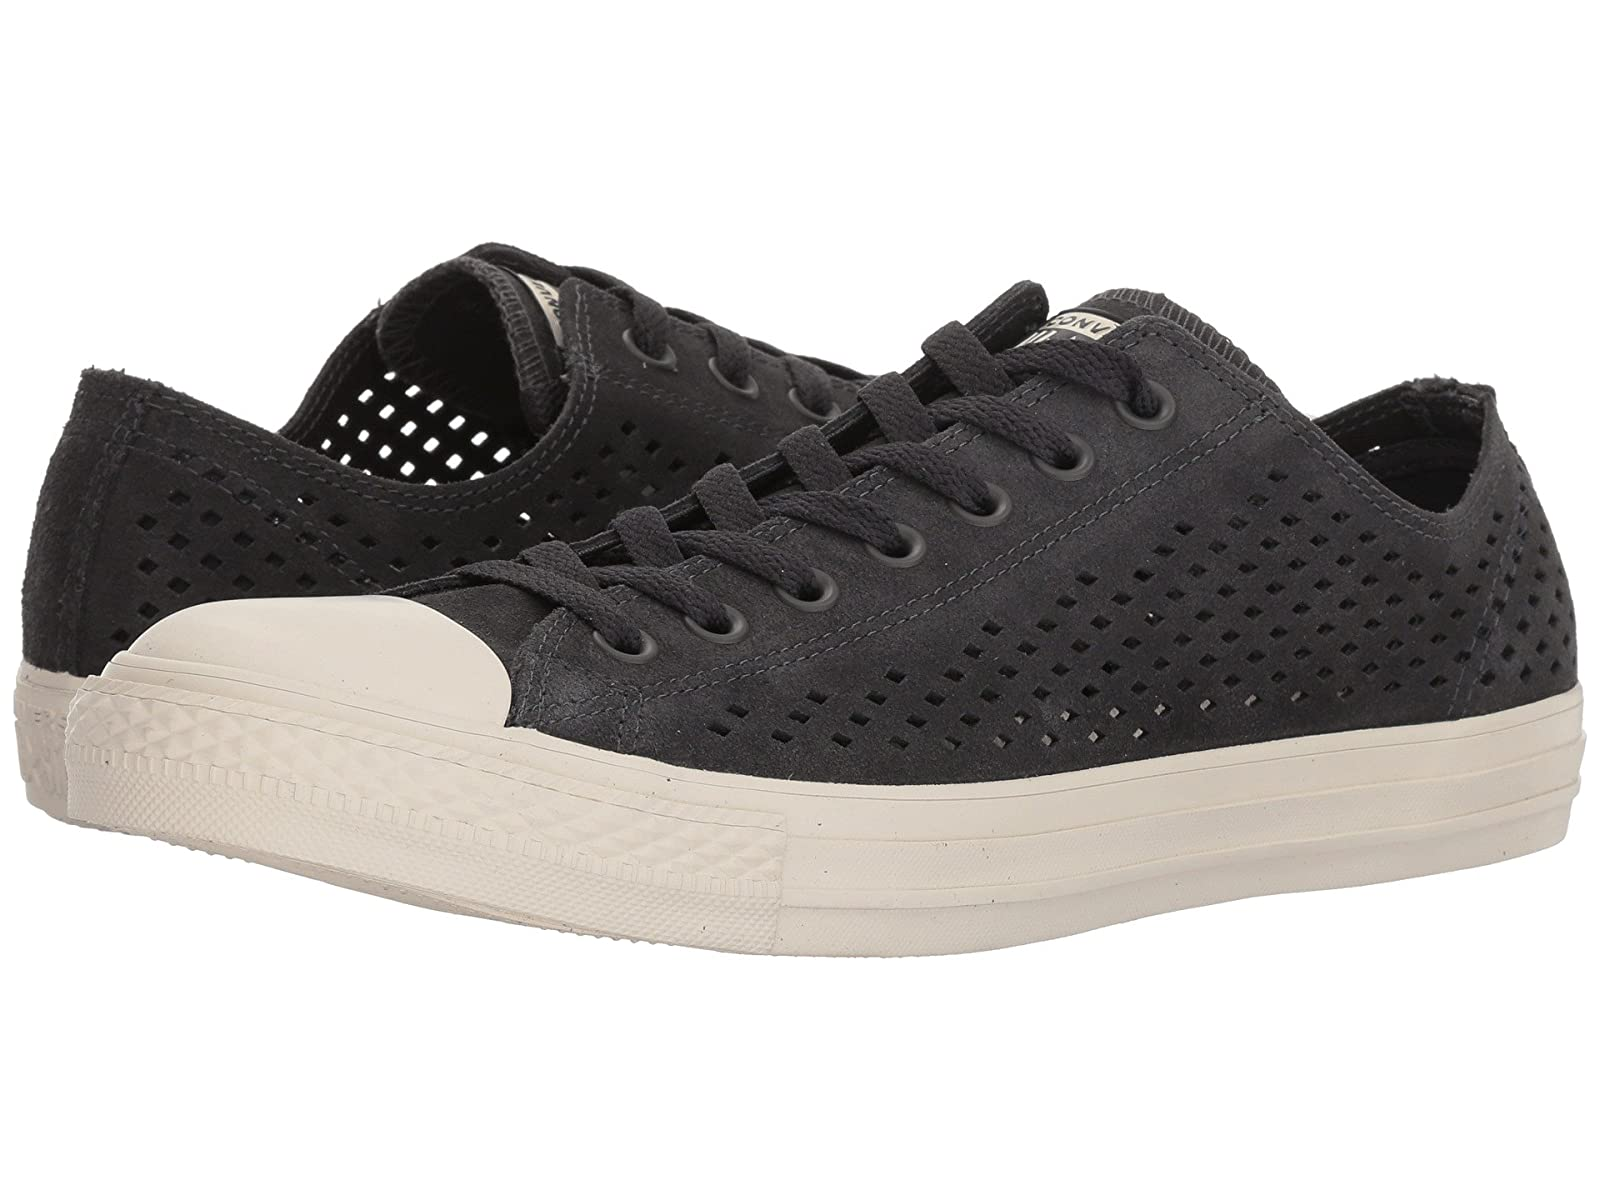 Converse Chuck Taylor® All Star® Ox - Perf SuedeAtmospheric grades have affordable shoes